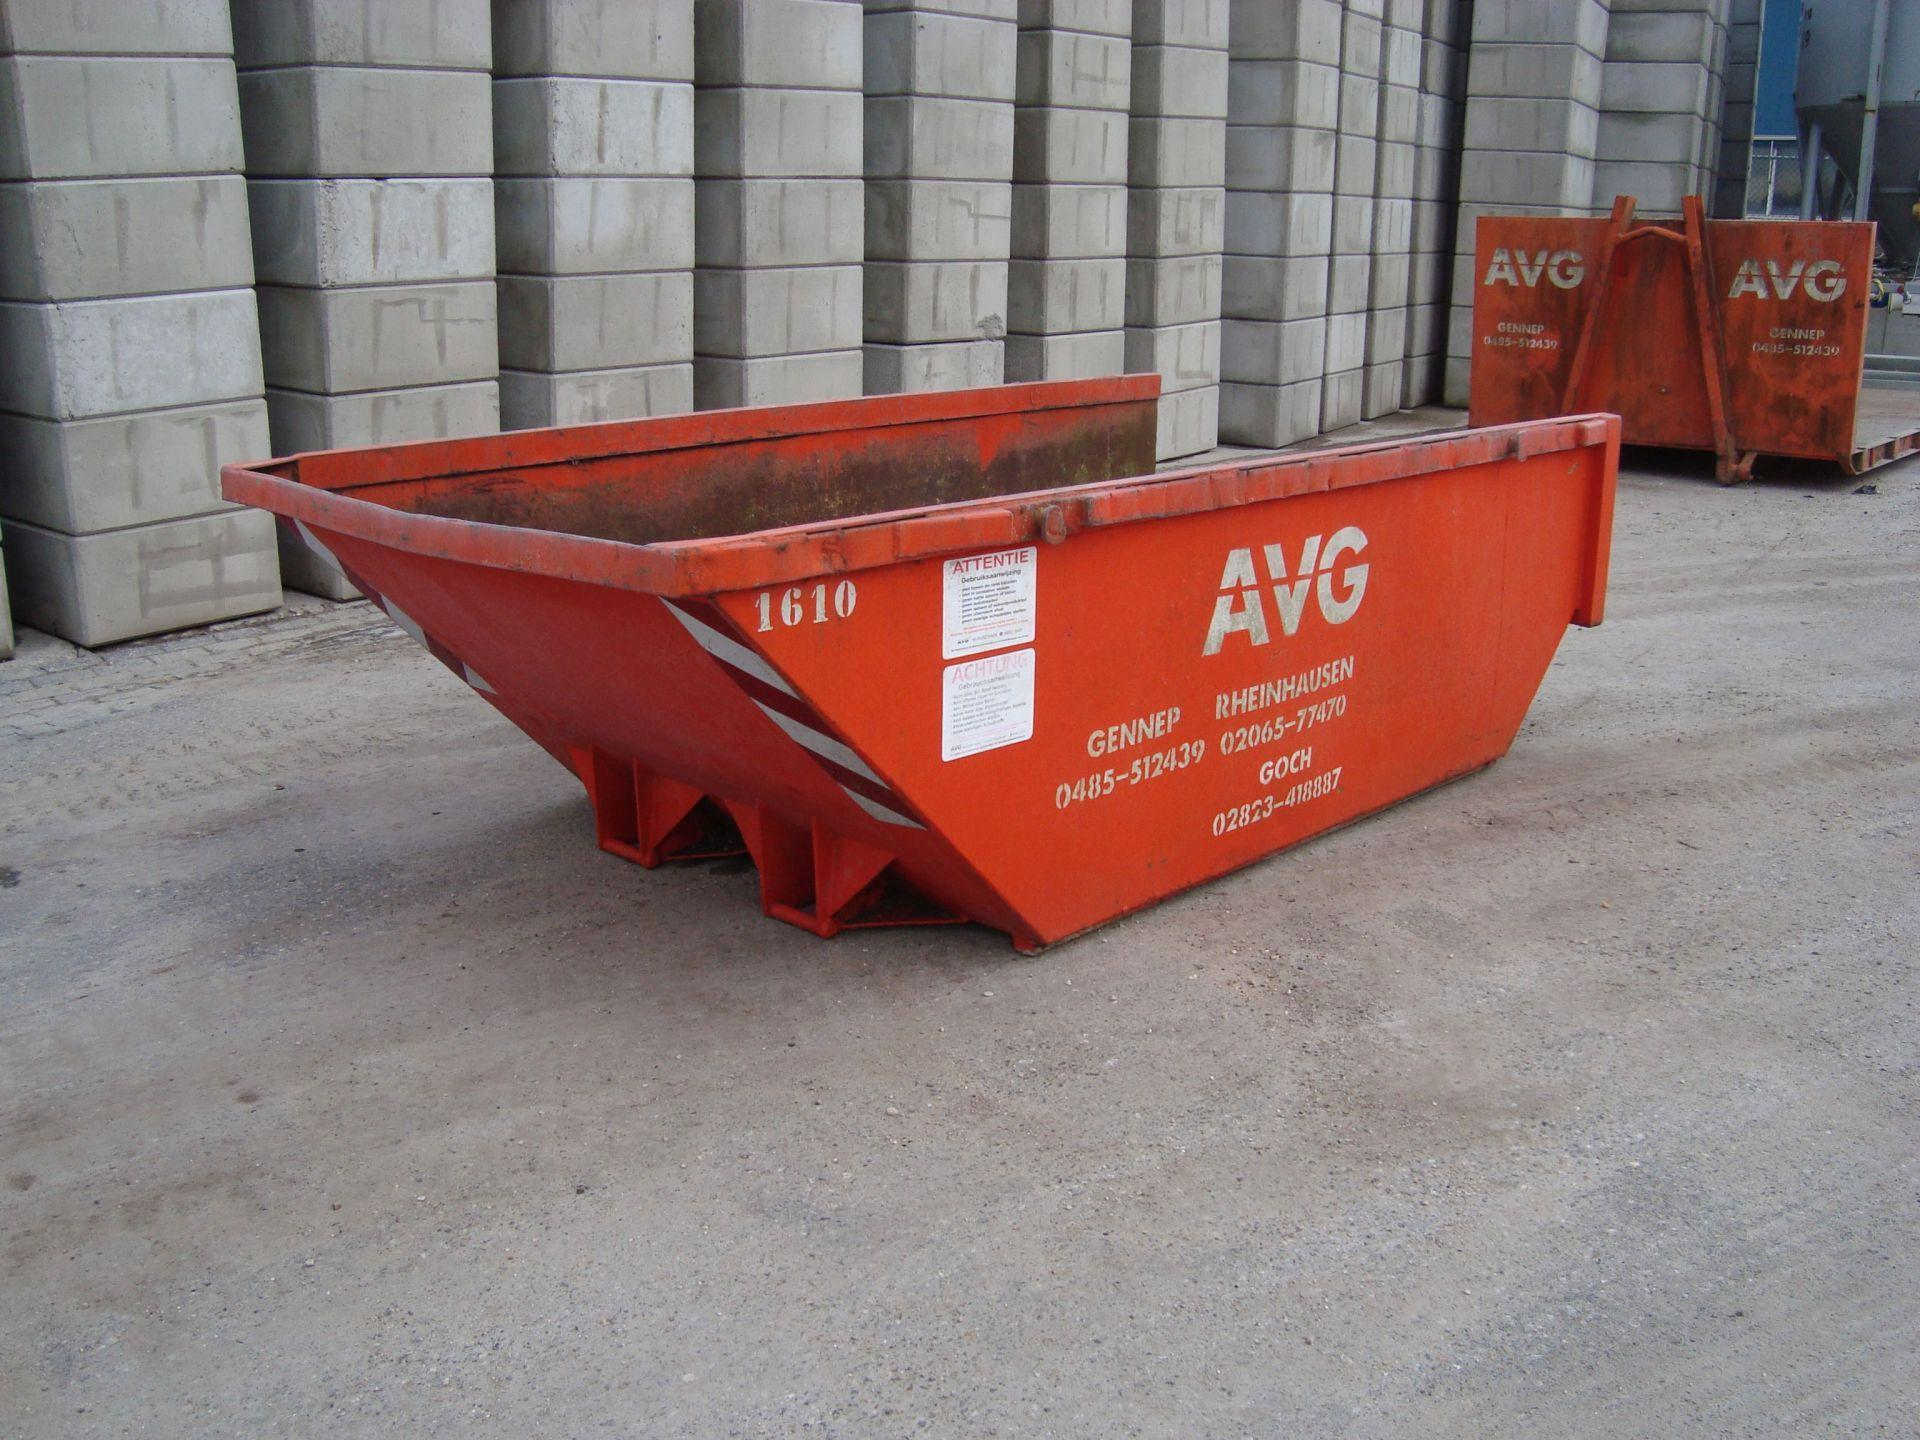 midden-container-4-avg-bouwstoffen